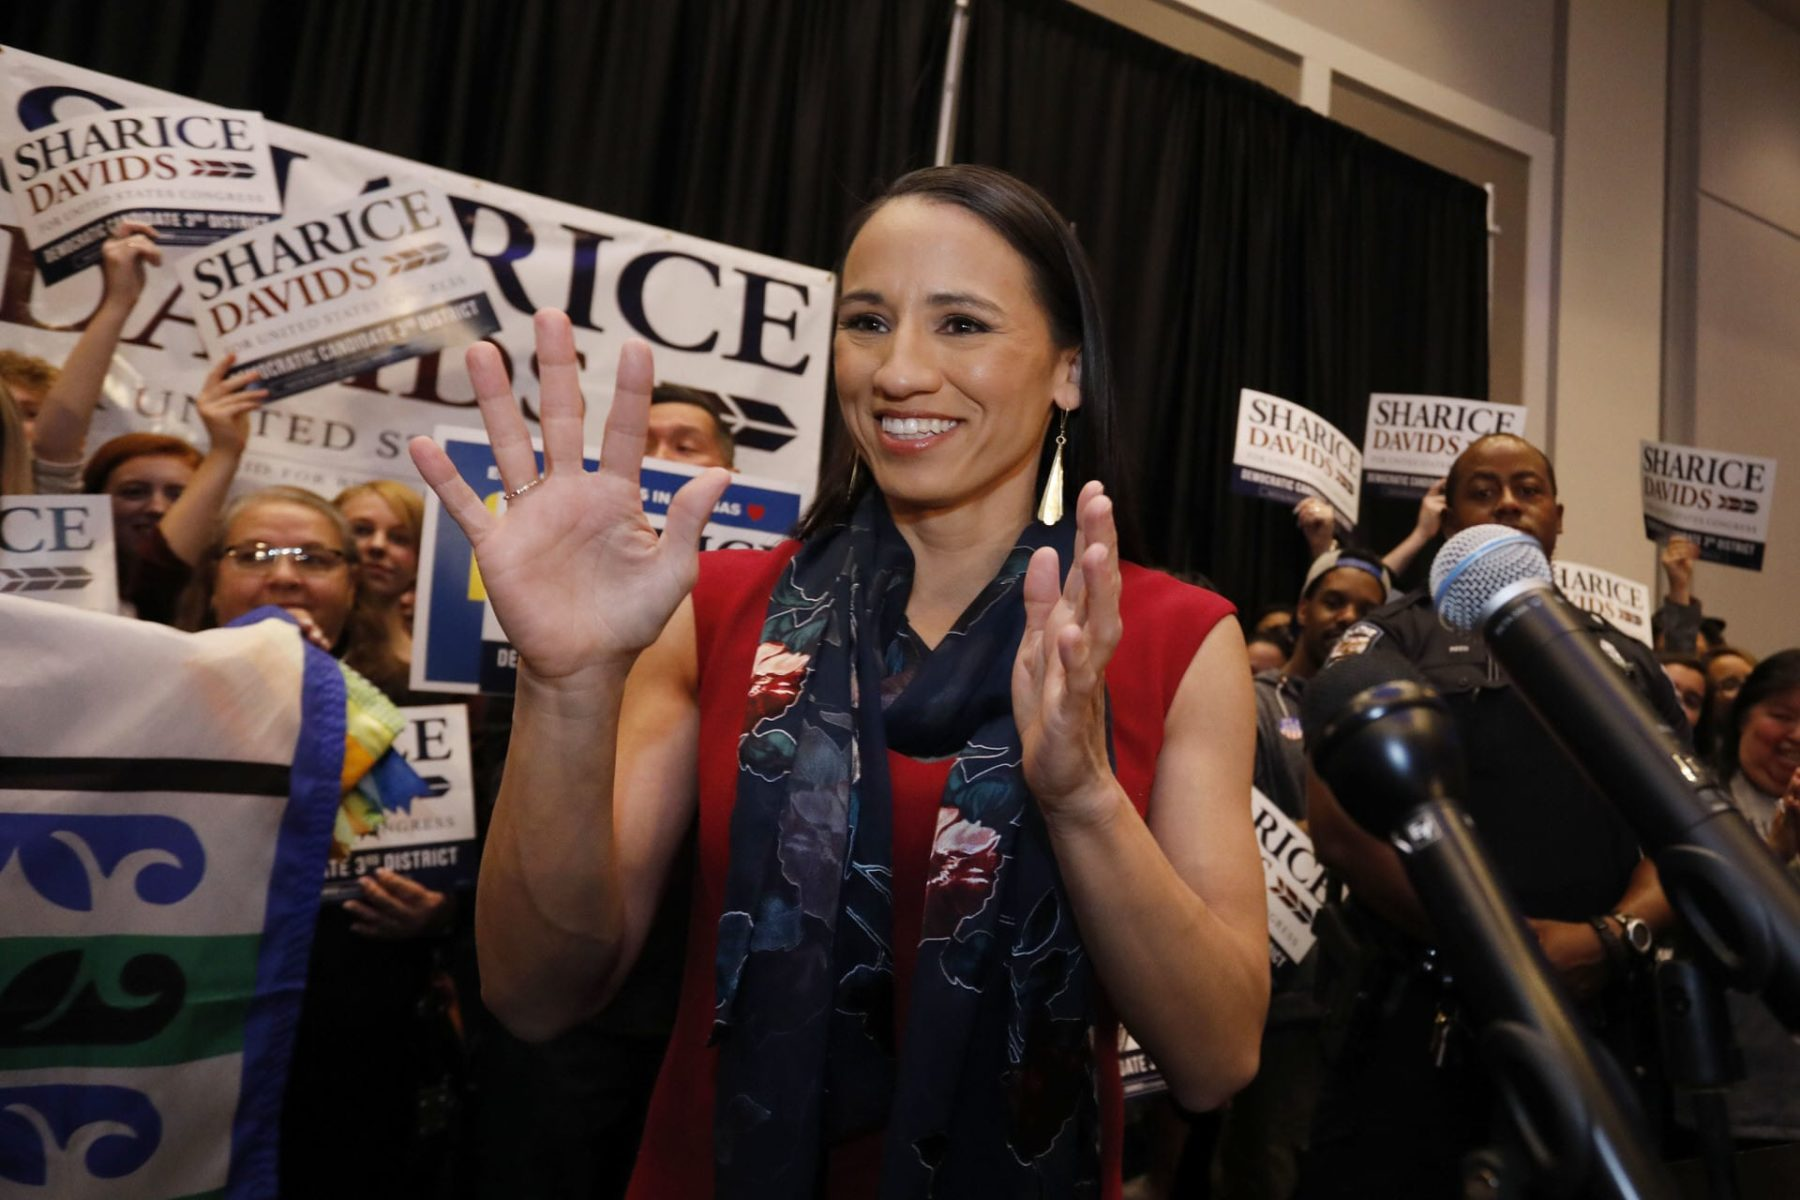 Rep. Sharice Davids at a campaign event.